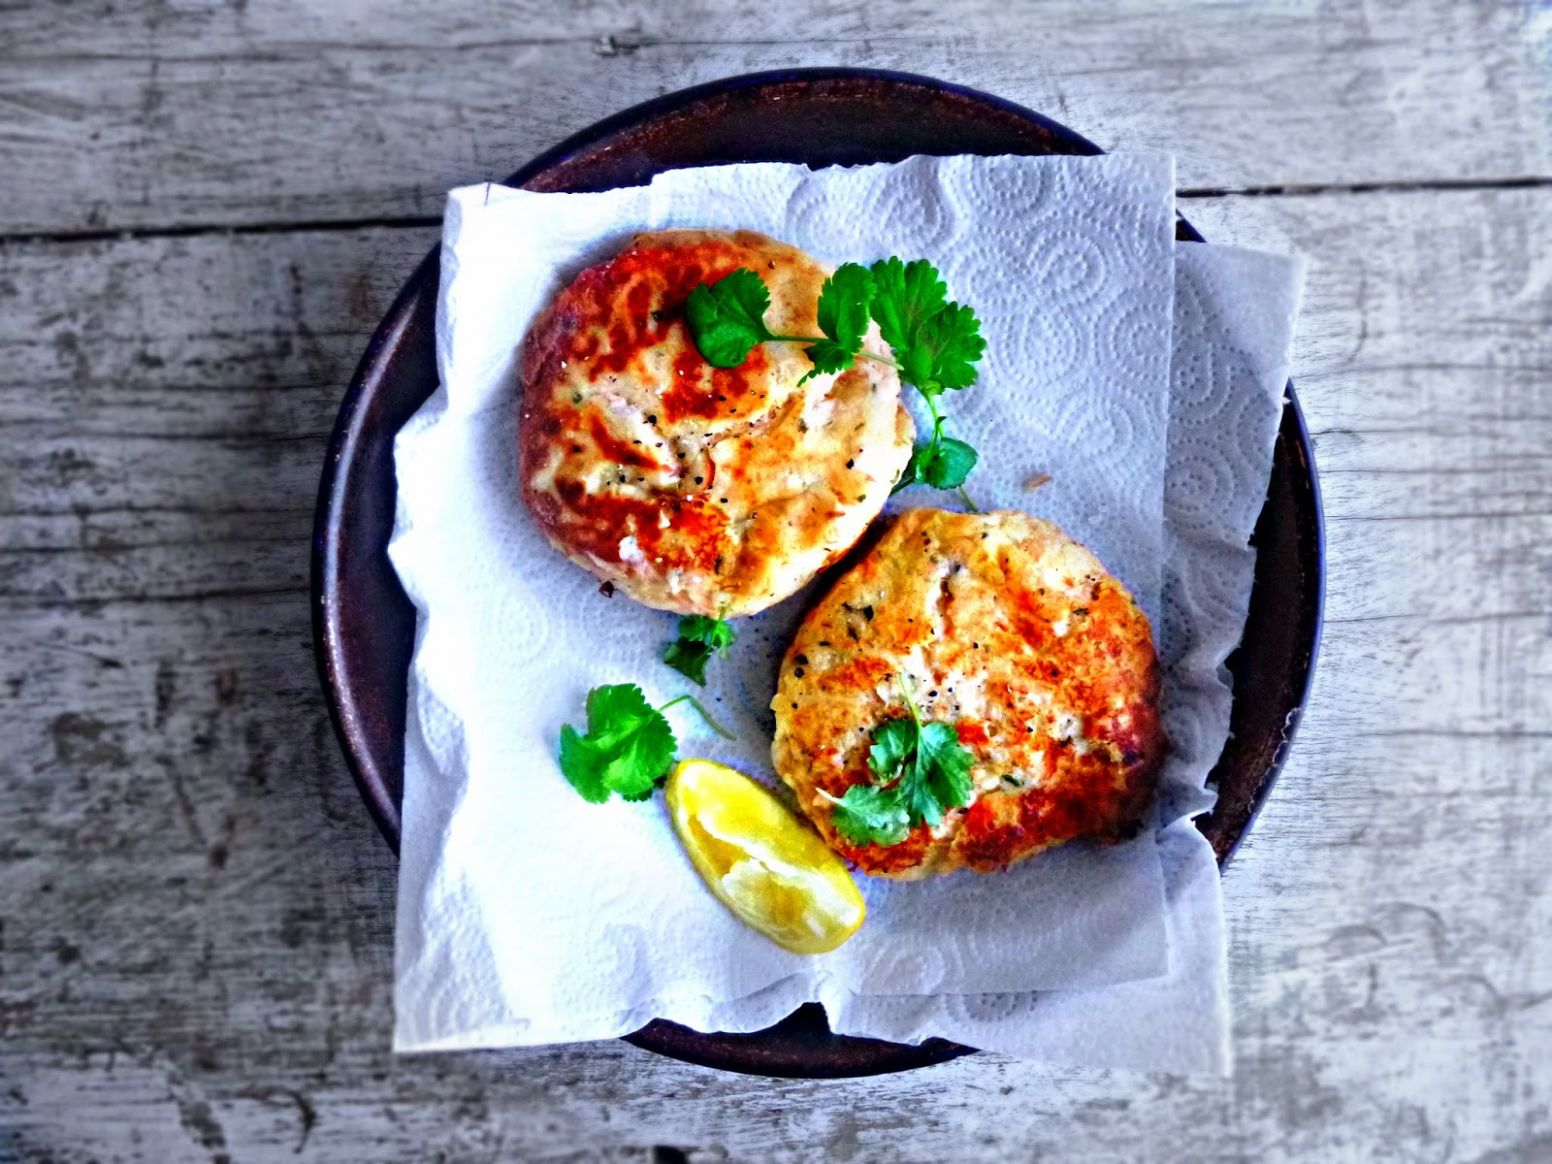 The Spoon and Whisk: Jamie's Salmon Fishcakes recipe